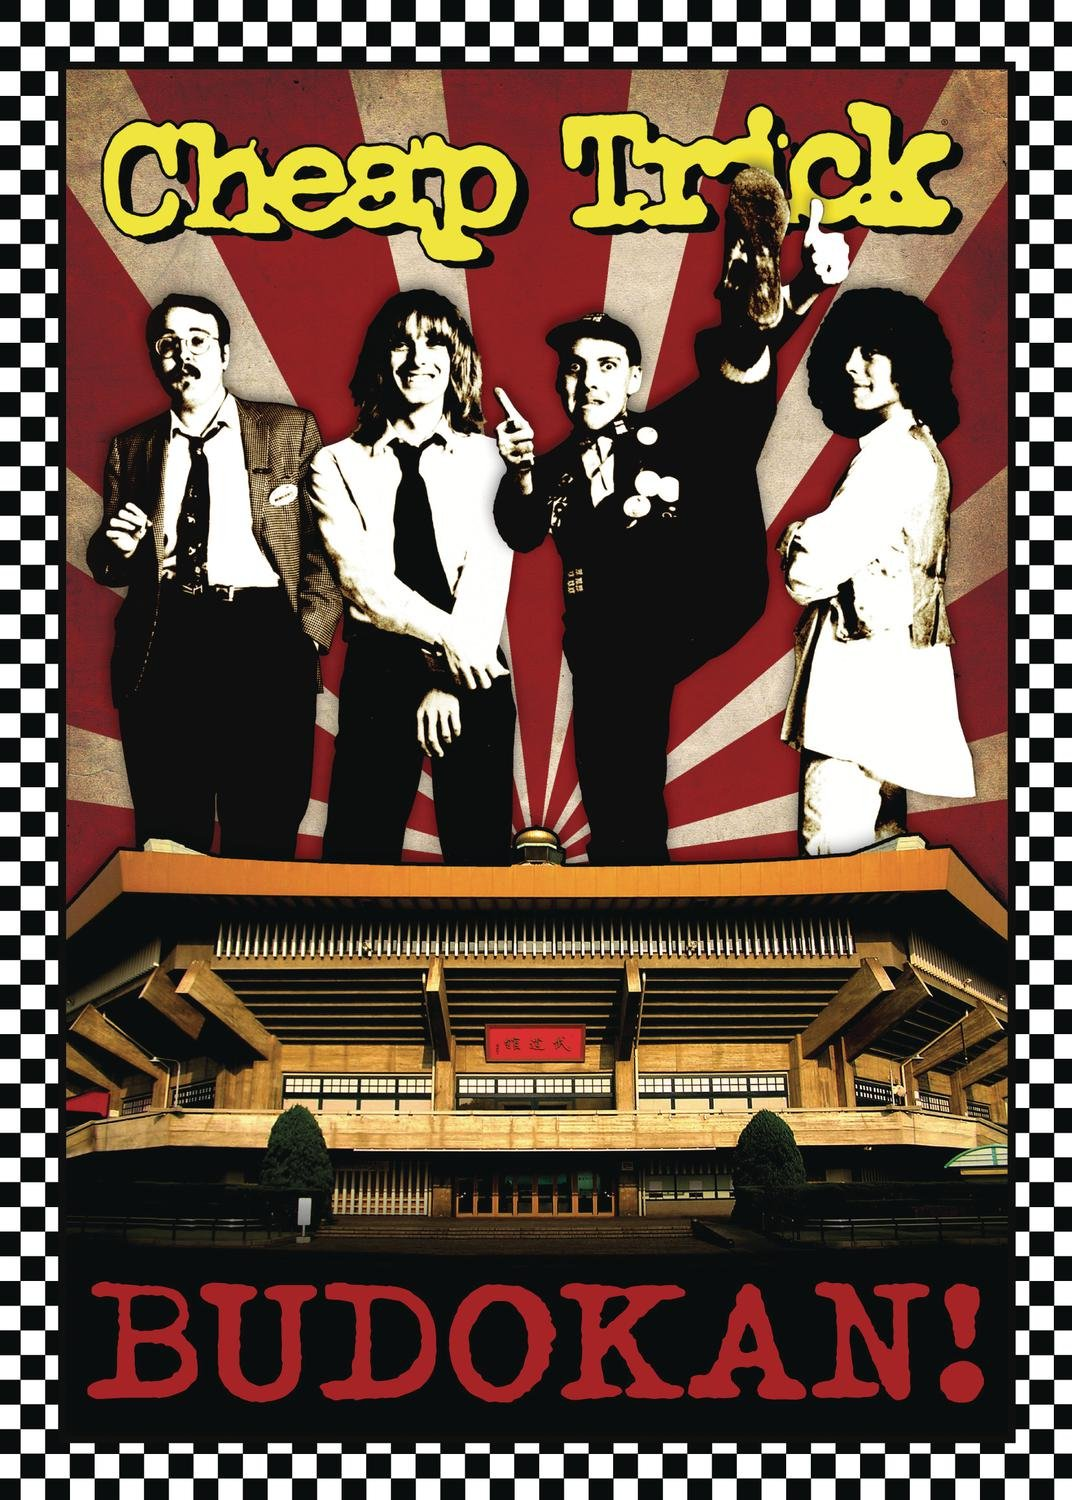 Budokan! 30th Anniversary DVD +3 CD's by Epic